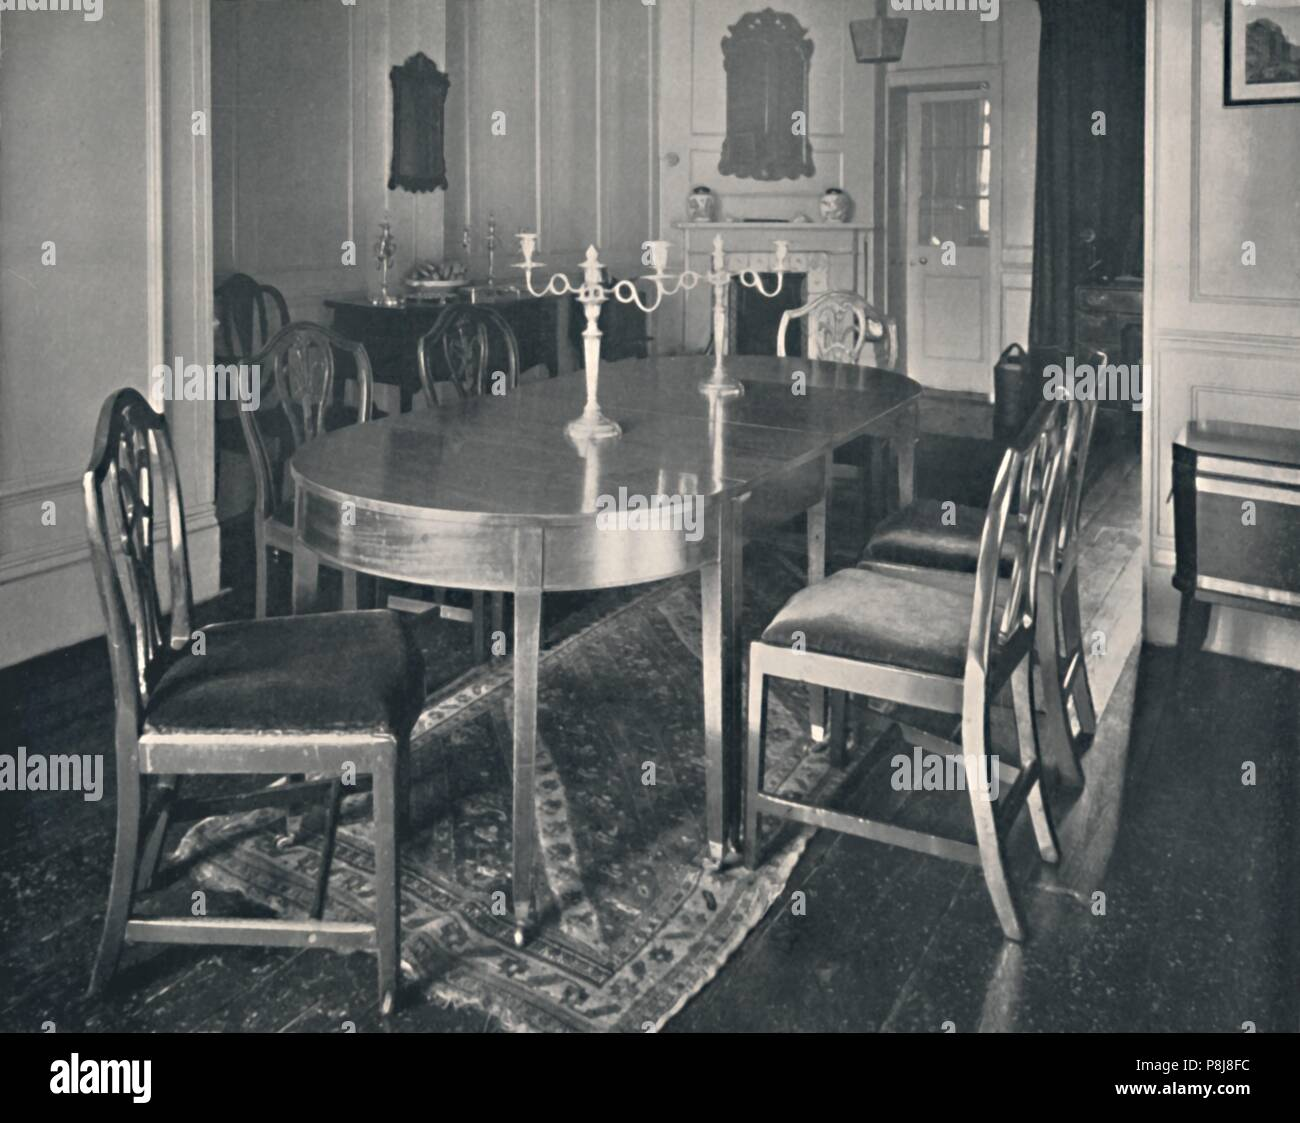 U0027Hepplewhite Mahogany Dining Room Furniture   Set Of Plumed Chairs With A  3 Piece Dining Table, About 1760 1770.u0027, 1928. From Old Furniture, Volume II